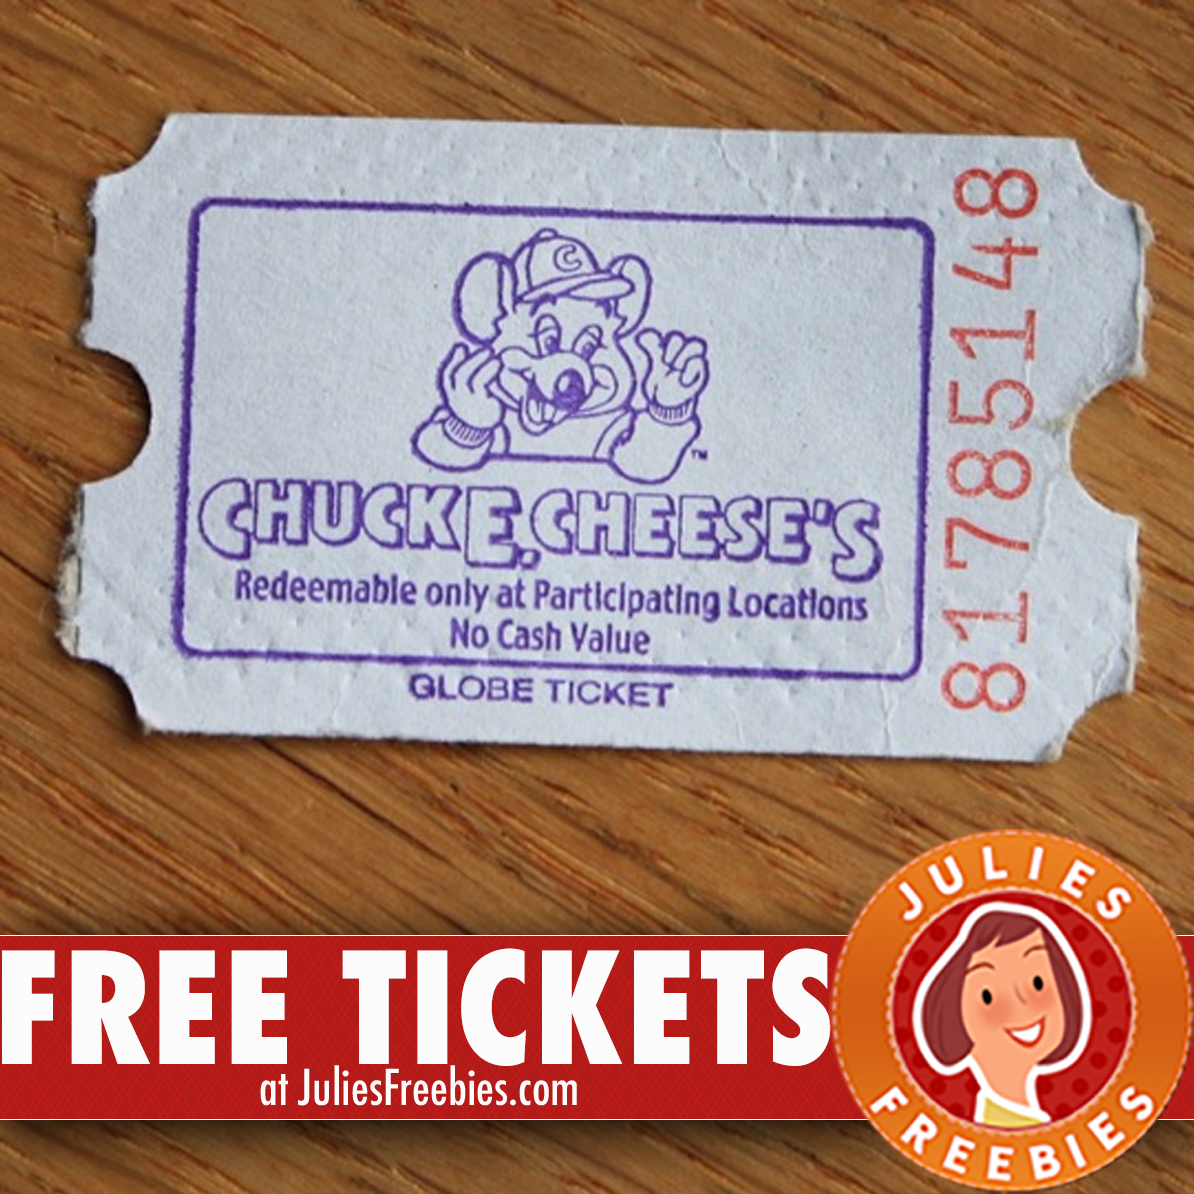 Details: Chuck E Cheese's is proud to salute the men and women of our armed forces and their dewittfbdeters.tk from 2 great offers: The Alpha Get a Large 1-topping pizza, 4 drinks & 45 tokens for $ ($40 value).The Bravo Get 2 Large 1-topping pizzas, 4 drinks & tokens for $ ($69 value) Just ask about their Military offers and show your Common Access Card or Uniformed Services ID.